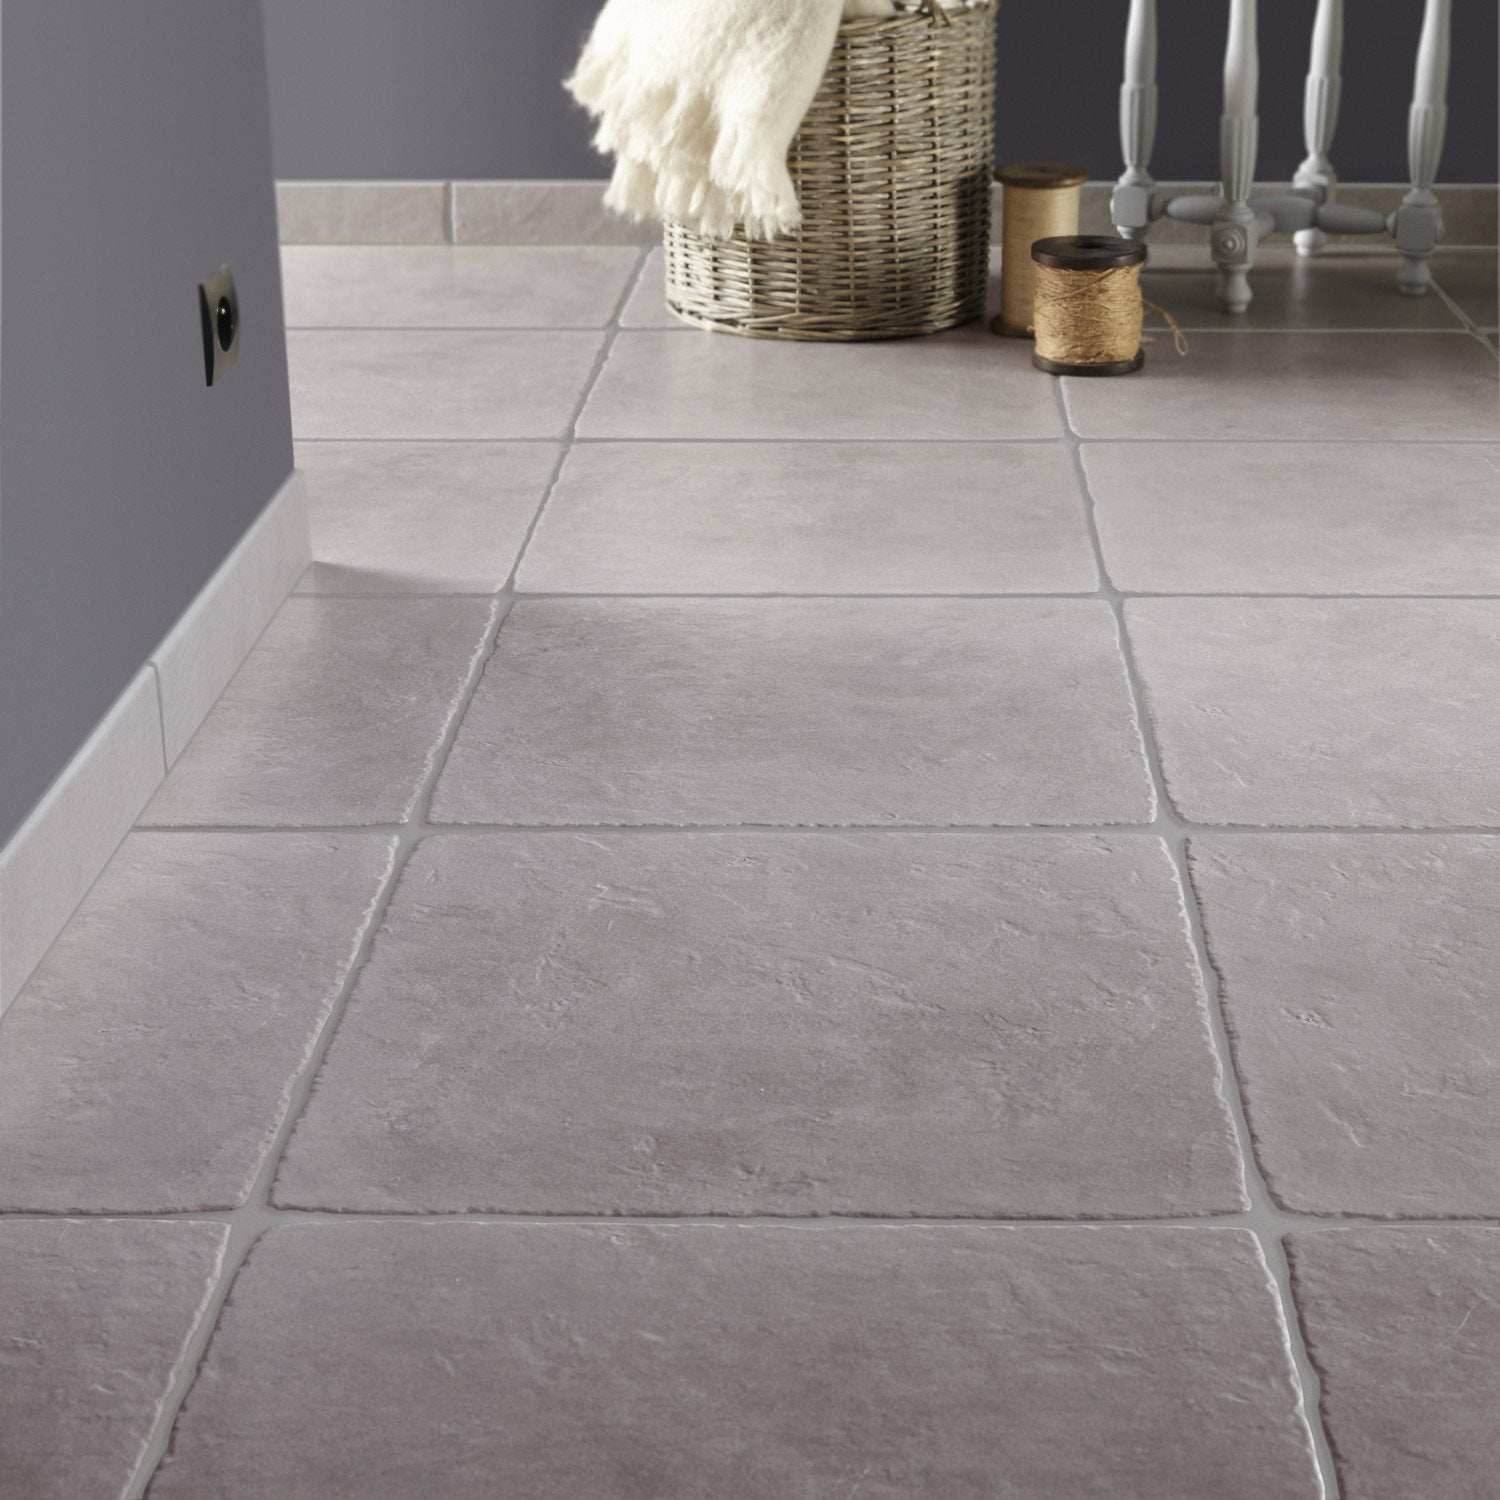 Carrelage sol et mur gris effet pierre toscane x for Carrelage hexagonal leroy merlin